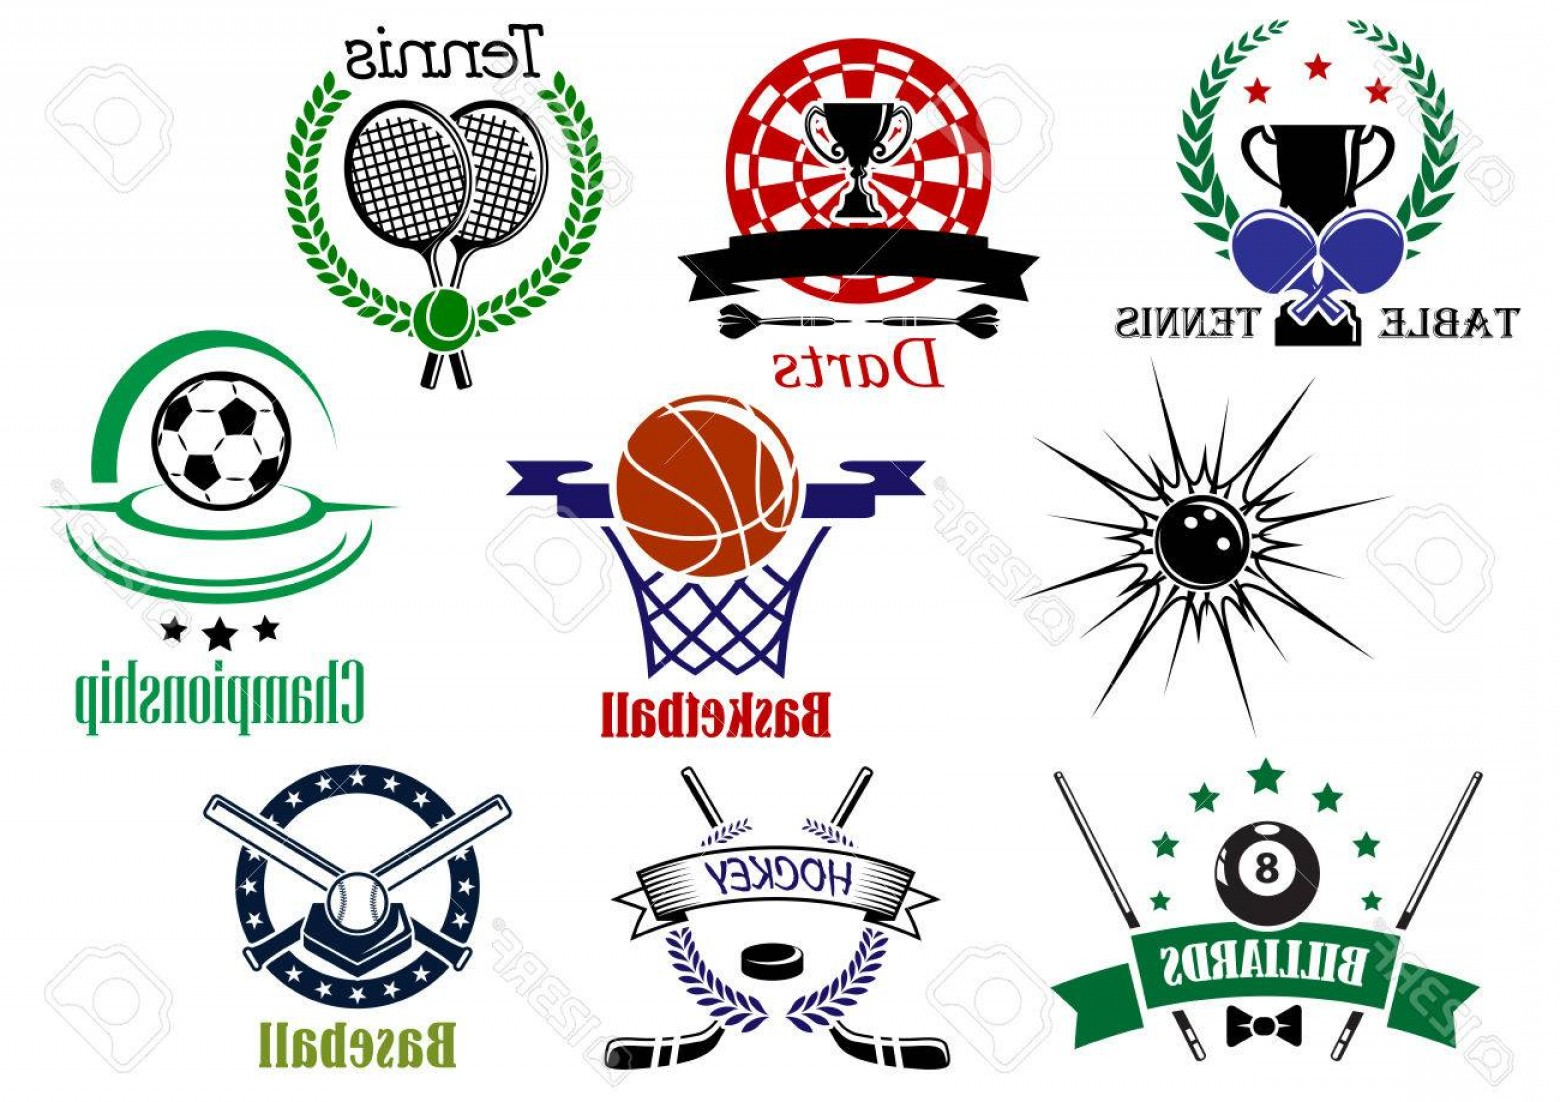 Hockey Teams Logo Vectors: Photostock Vector Team Sports Emblems And Logo For Football Or Soccer Ice Hockey Darts Basketball Billiards Tennis Bow